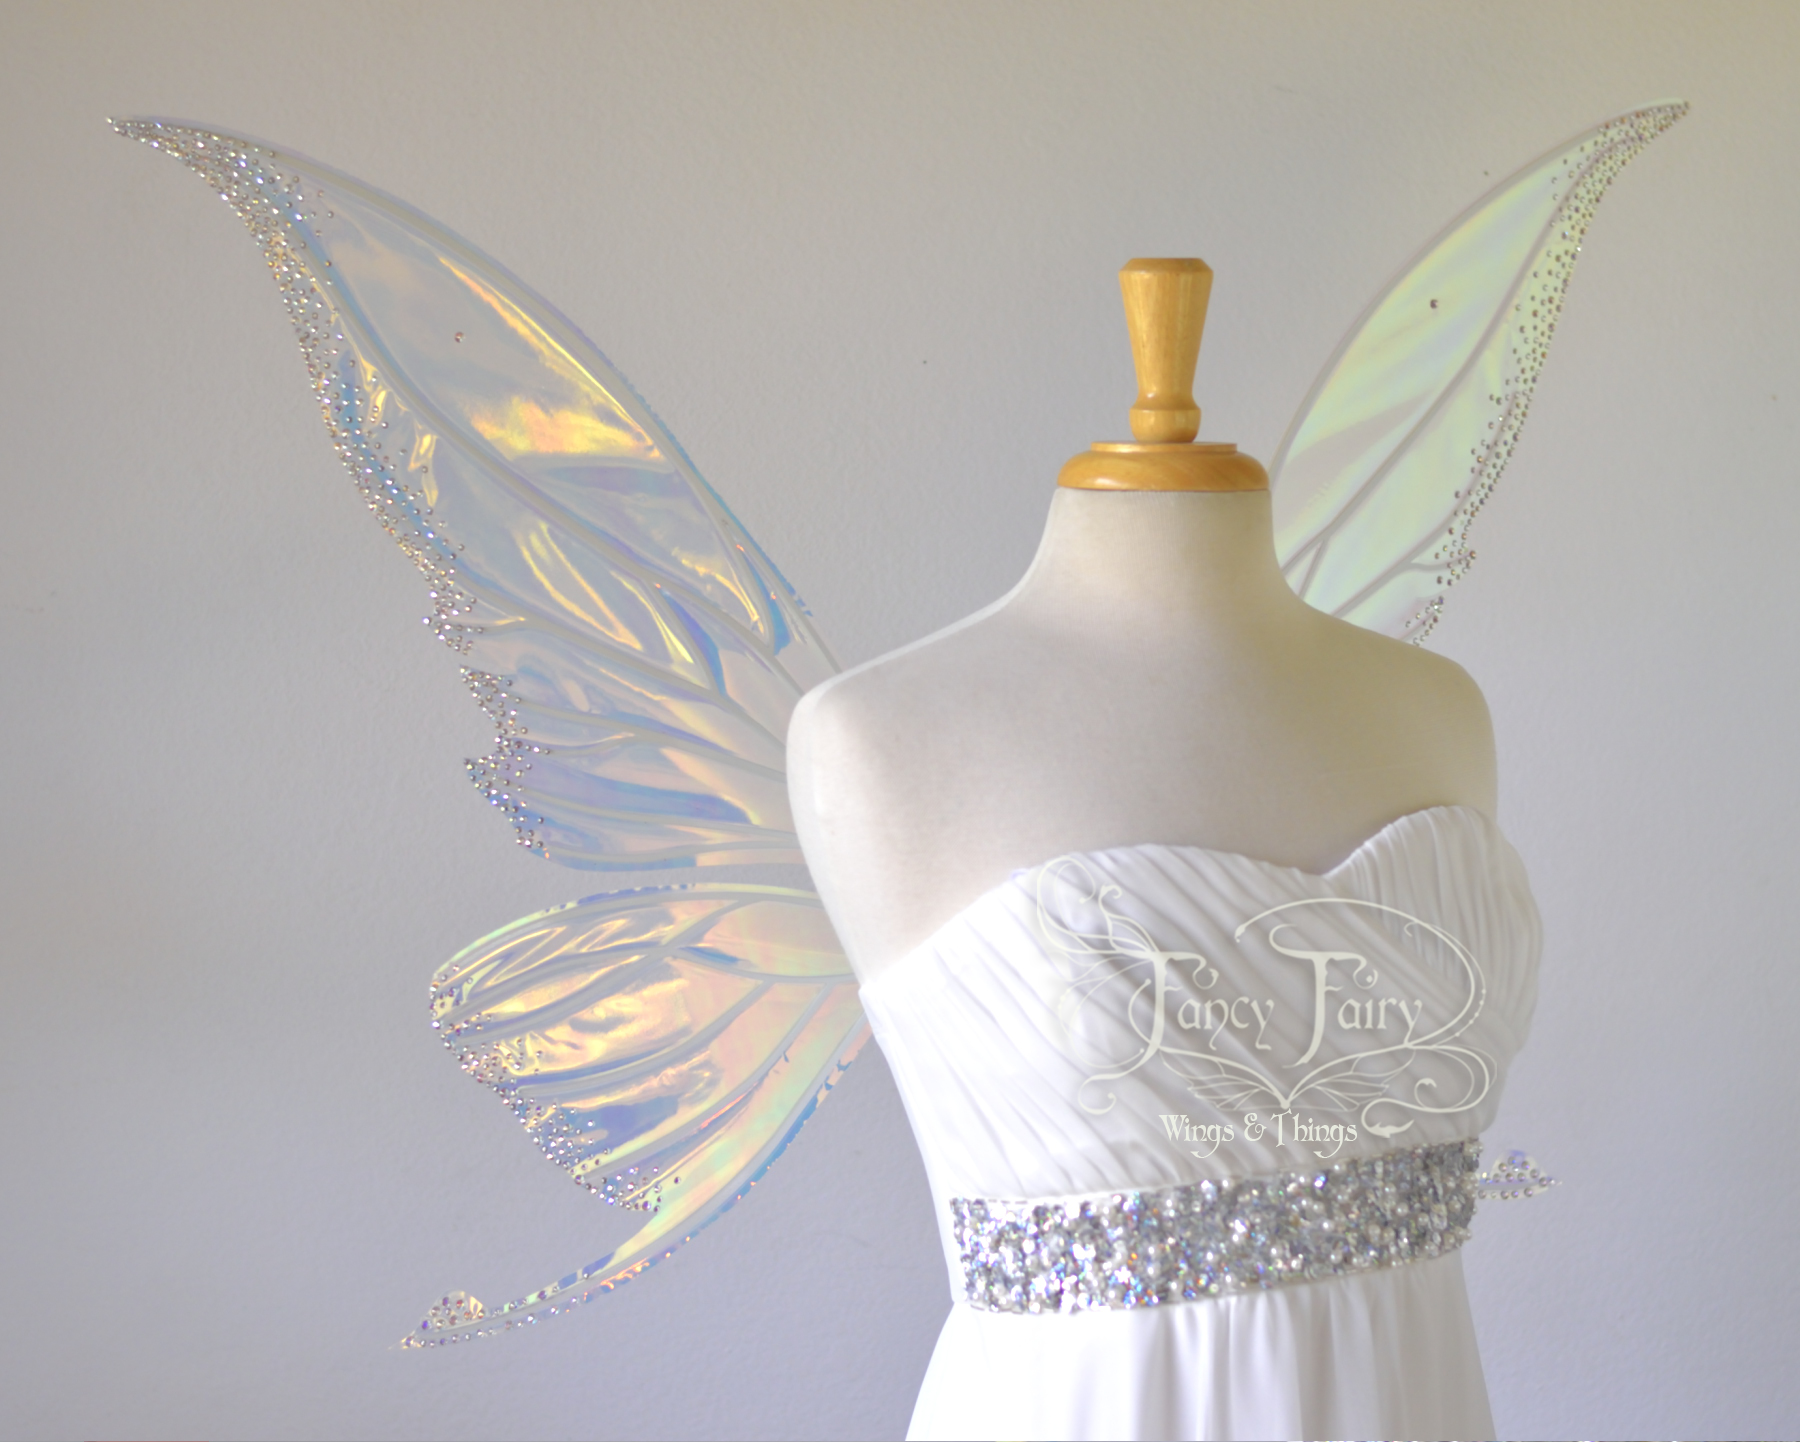 Titania Fairy Wings with Swarovski Crystals - Silver Edition